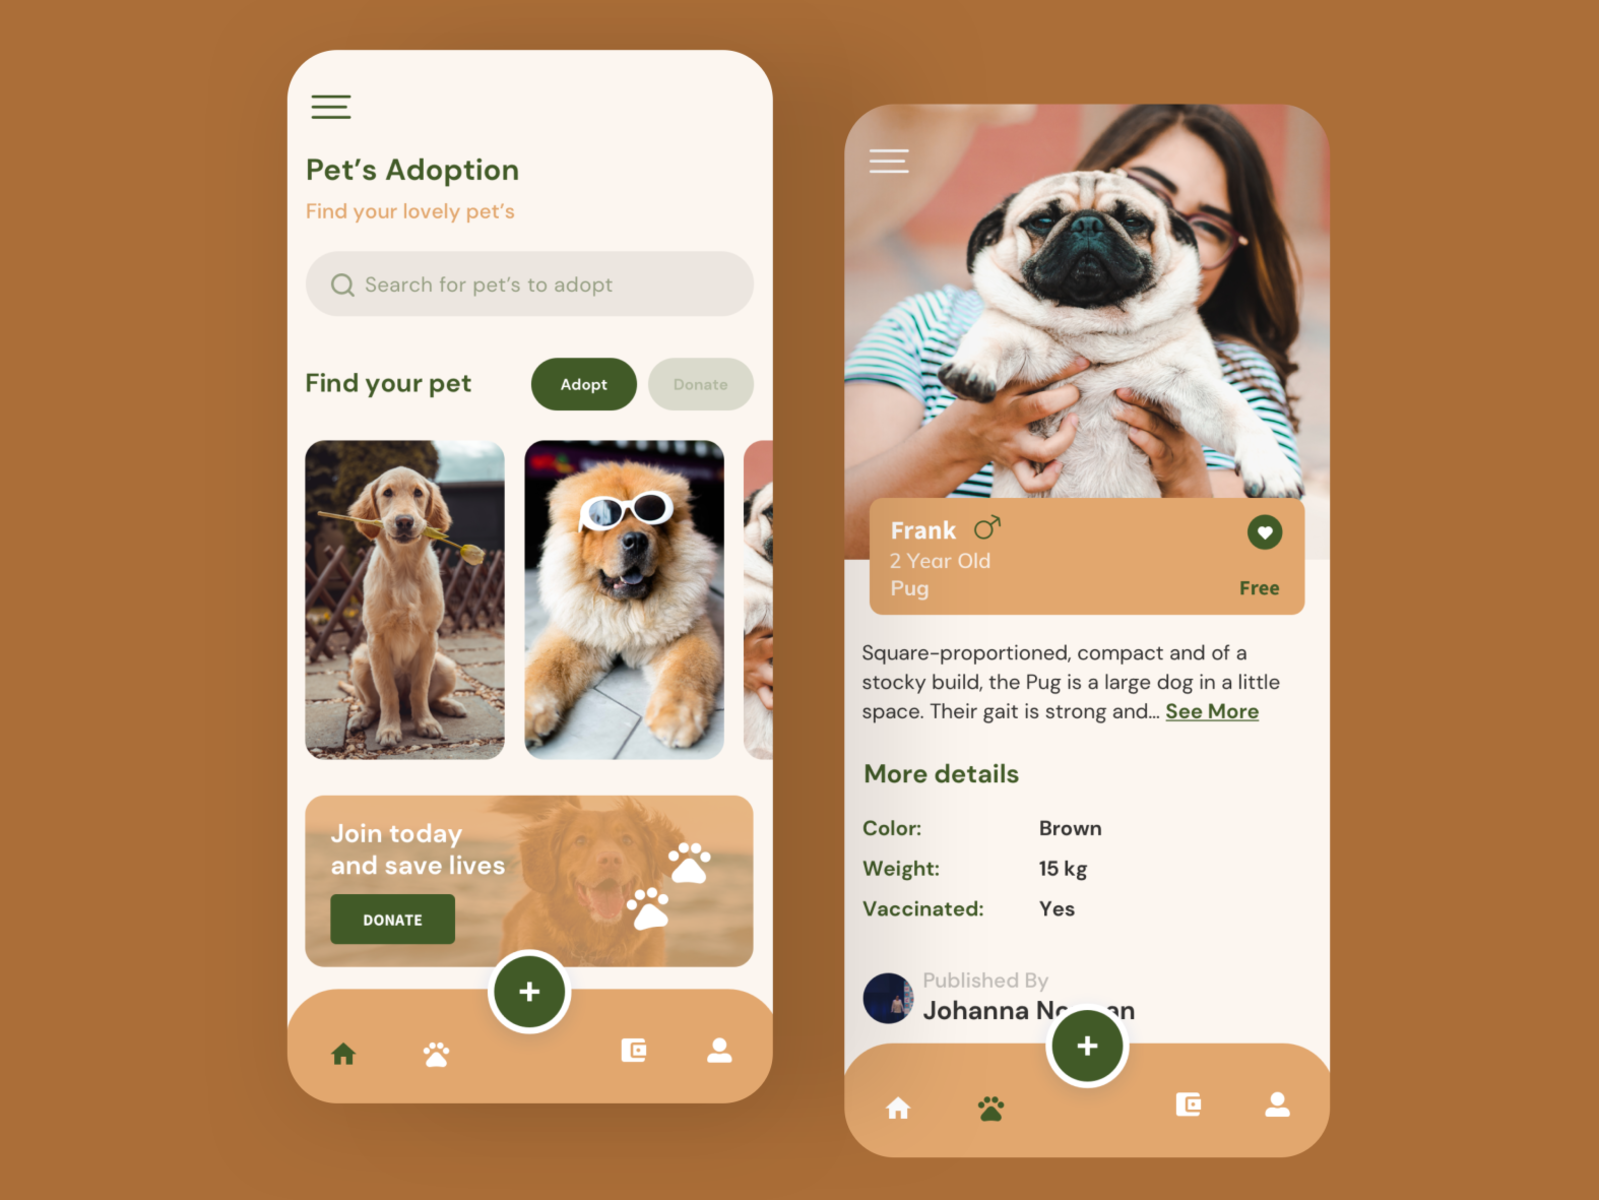 Pets Adoption Mobile App By Pierfilippo Ariano On Dribbble